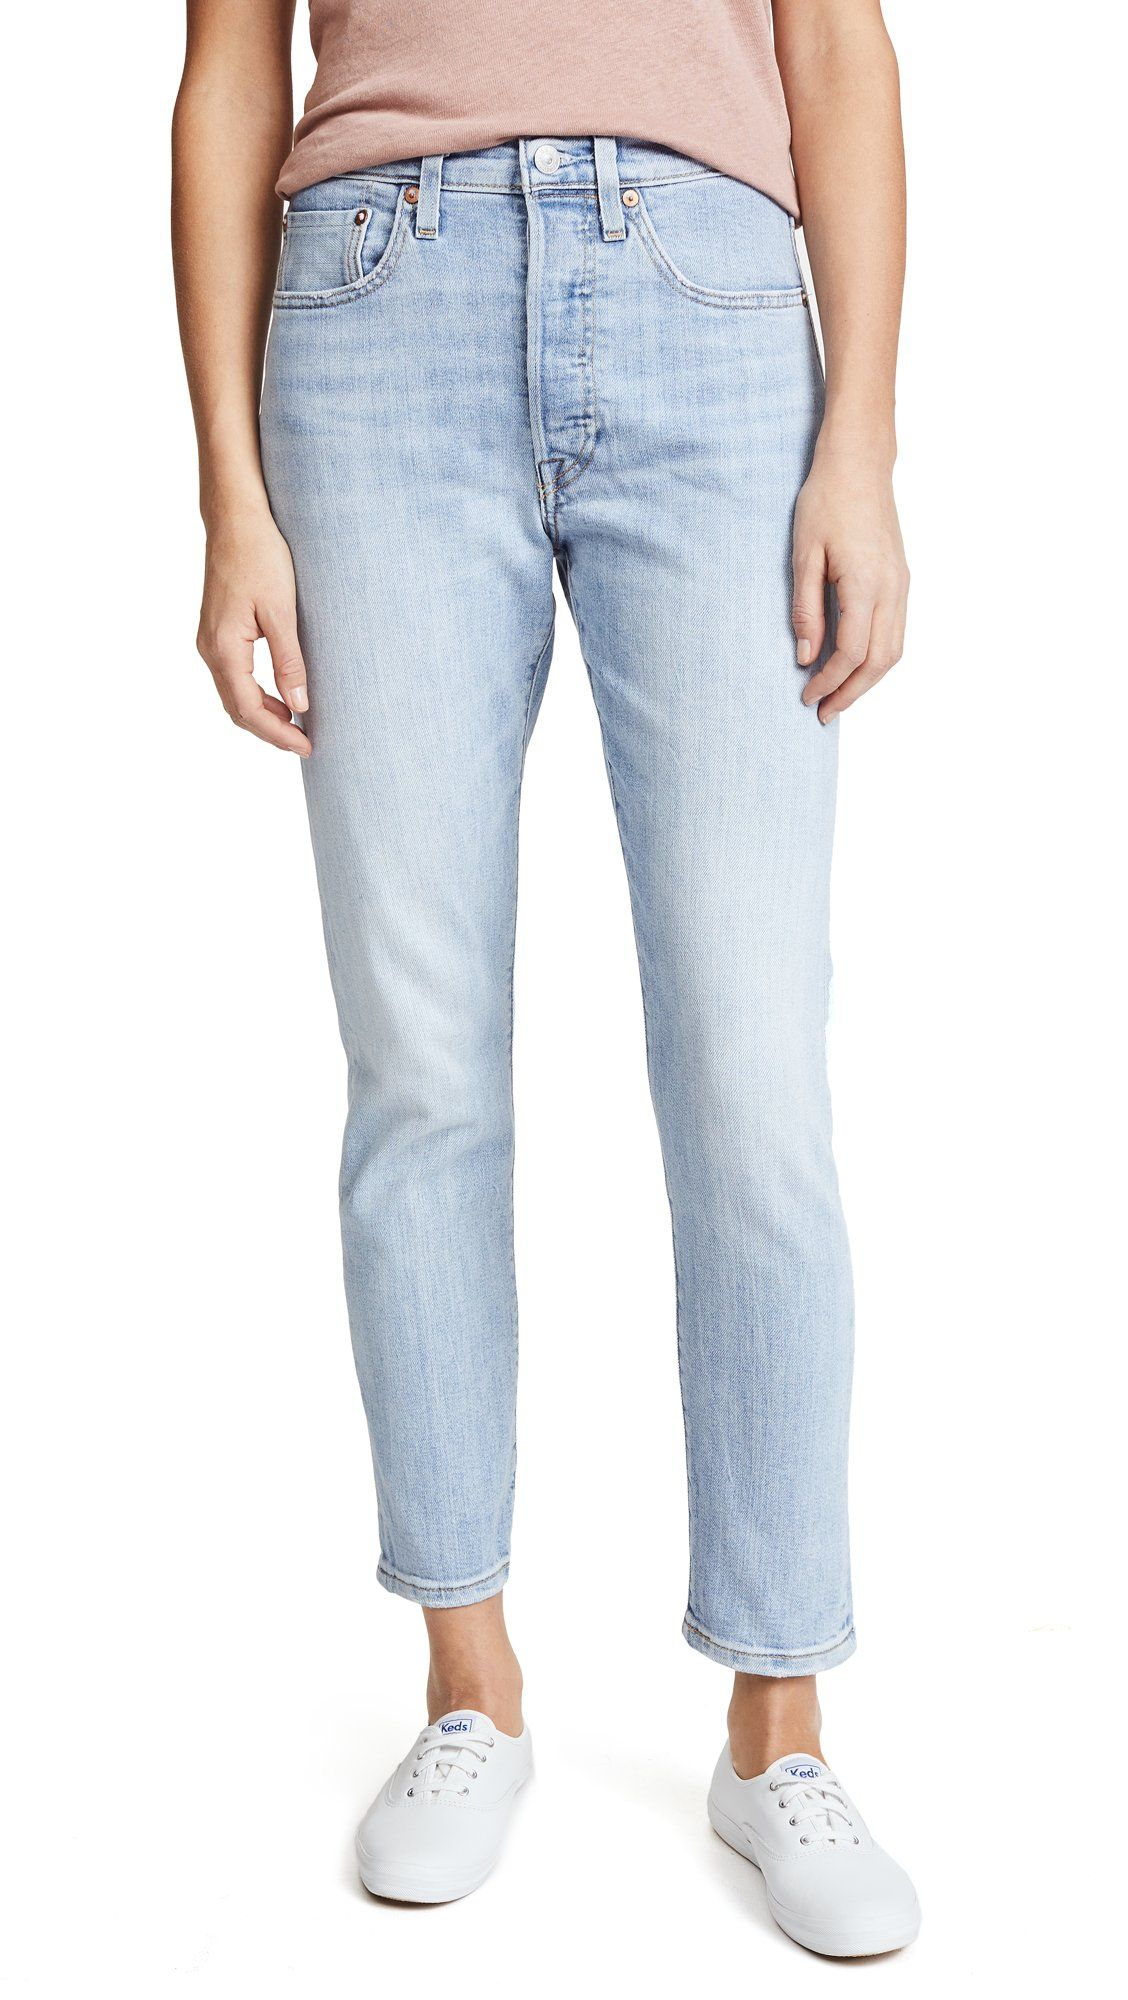 e79b1591 Levis Womens 501 Stretch Skinny Jeans Heartbreak High 27 *** Find out more  about the great product at the image link. (This is an affiliate link and I  ...